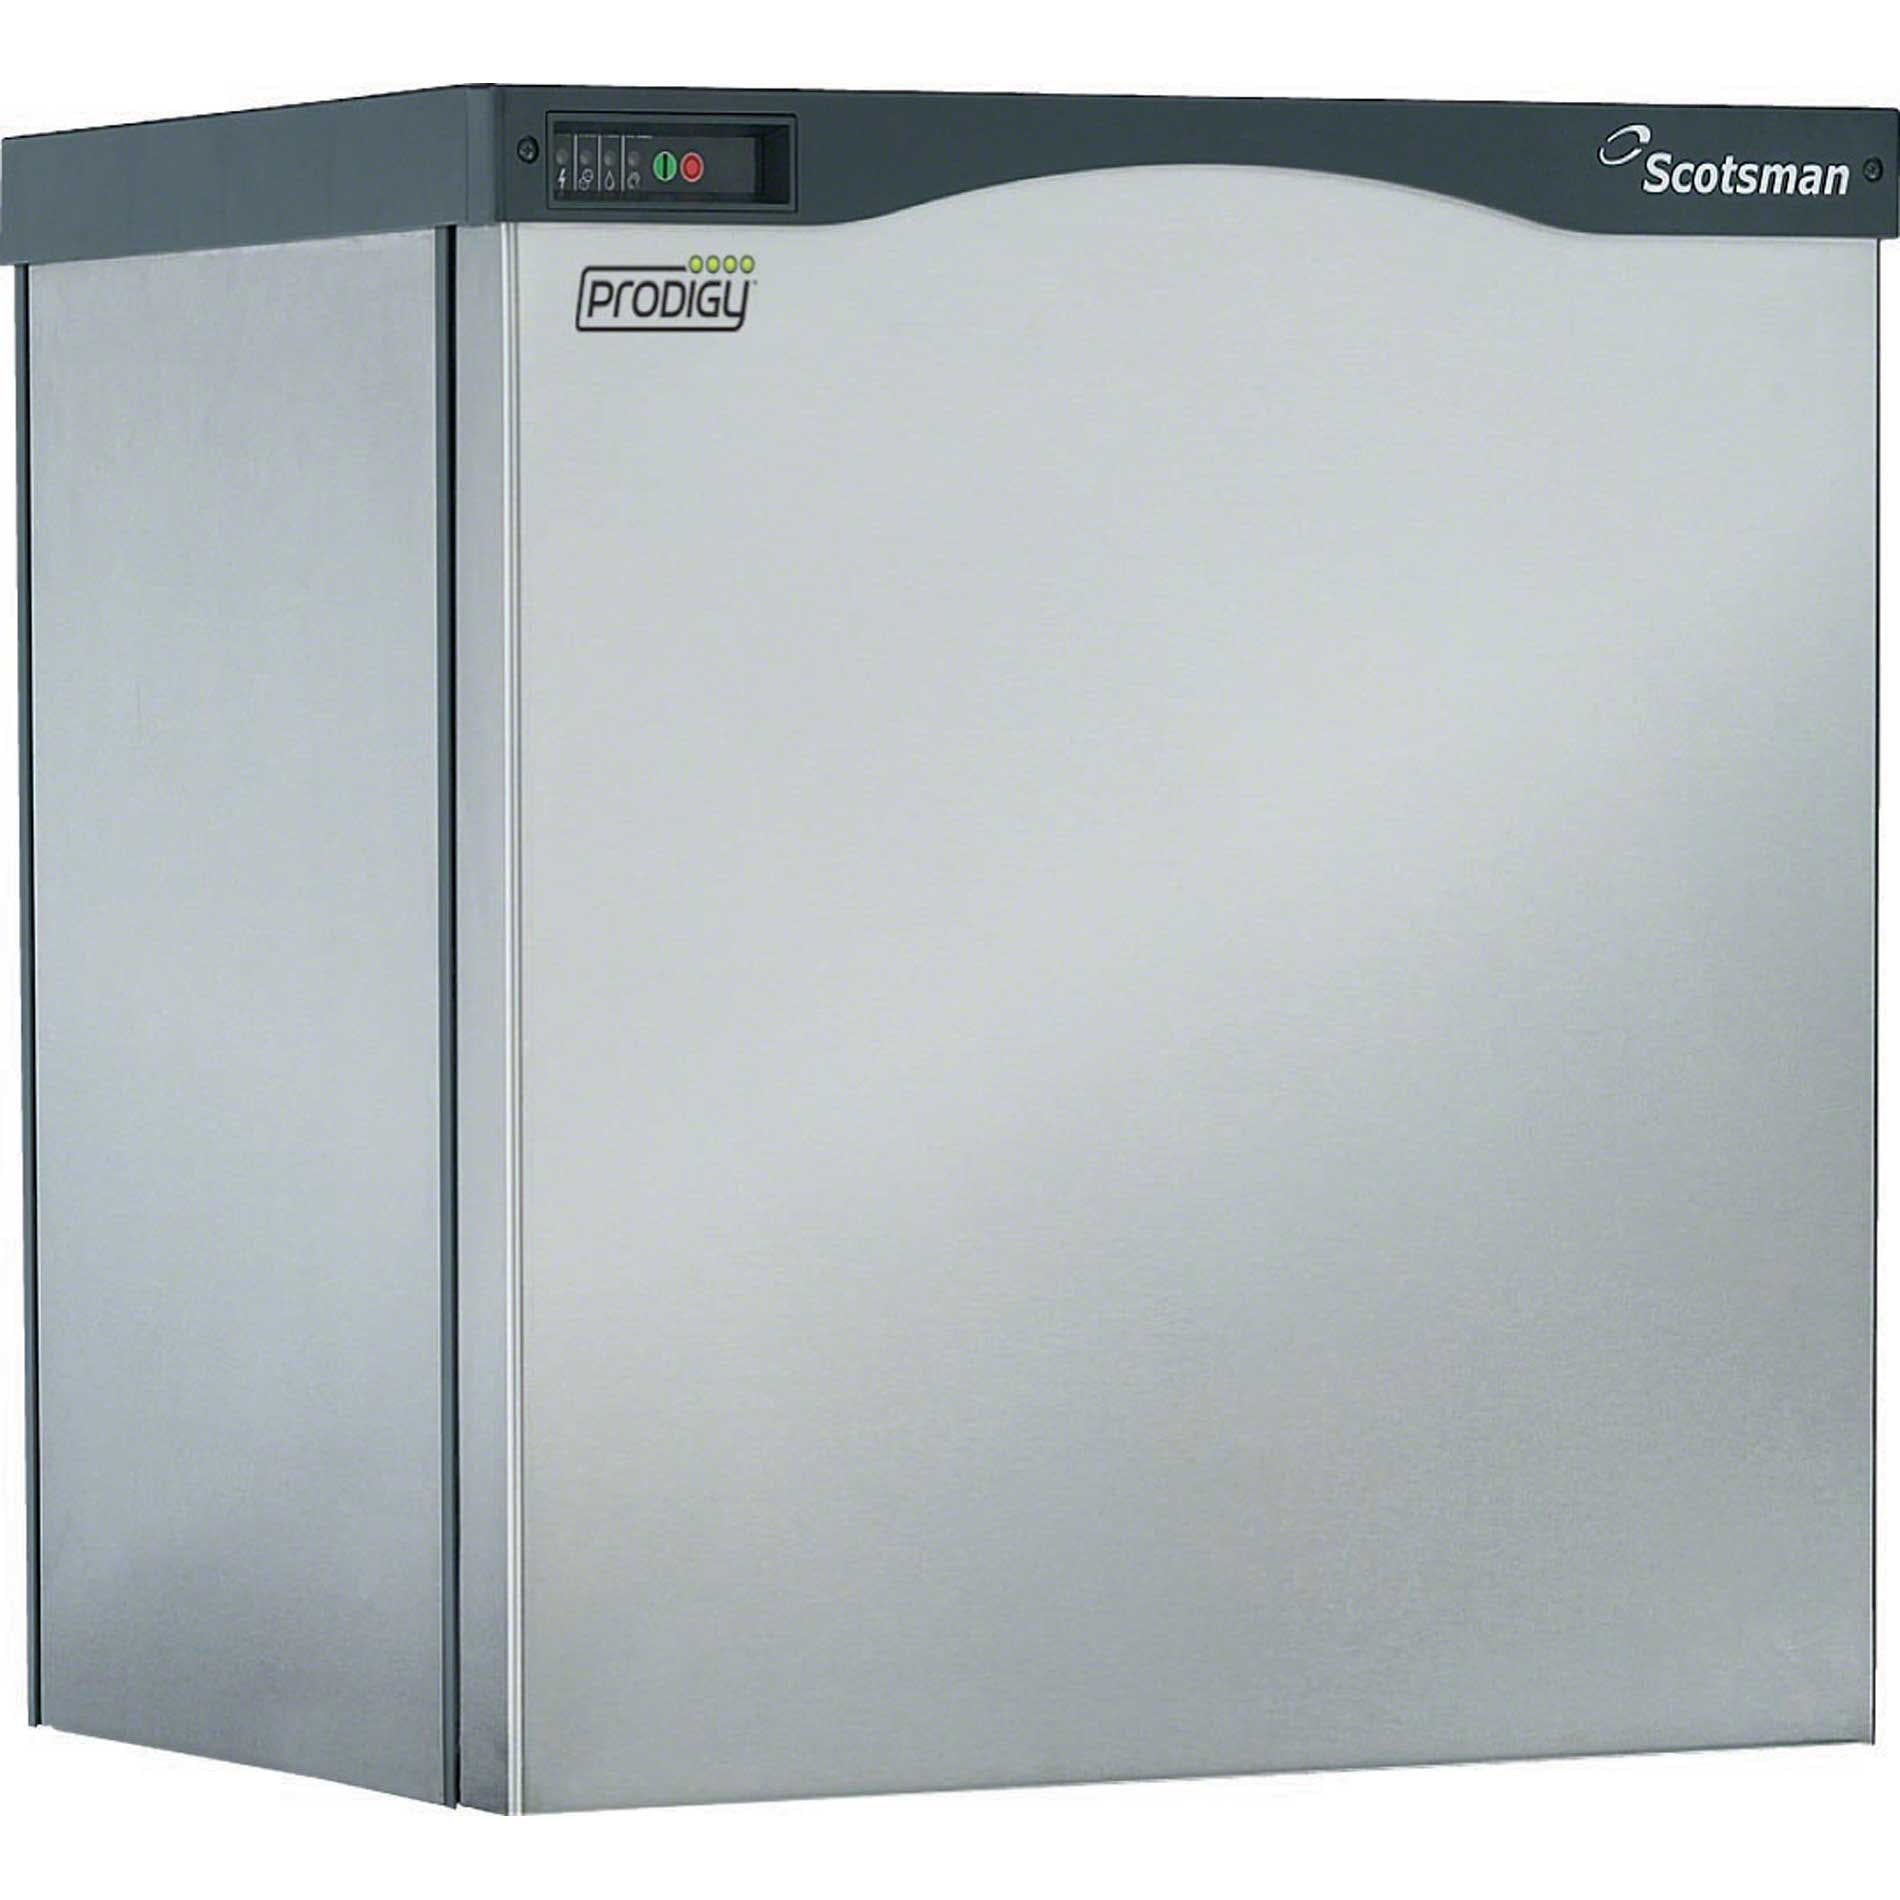 Scotsman - EH430SL-1 Prodigy® Eclipse® 1400 lb. Remote Cooled Ice Maker Ice machine sold by Food Service Warehouse